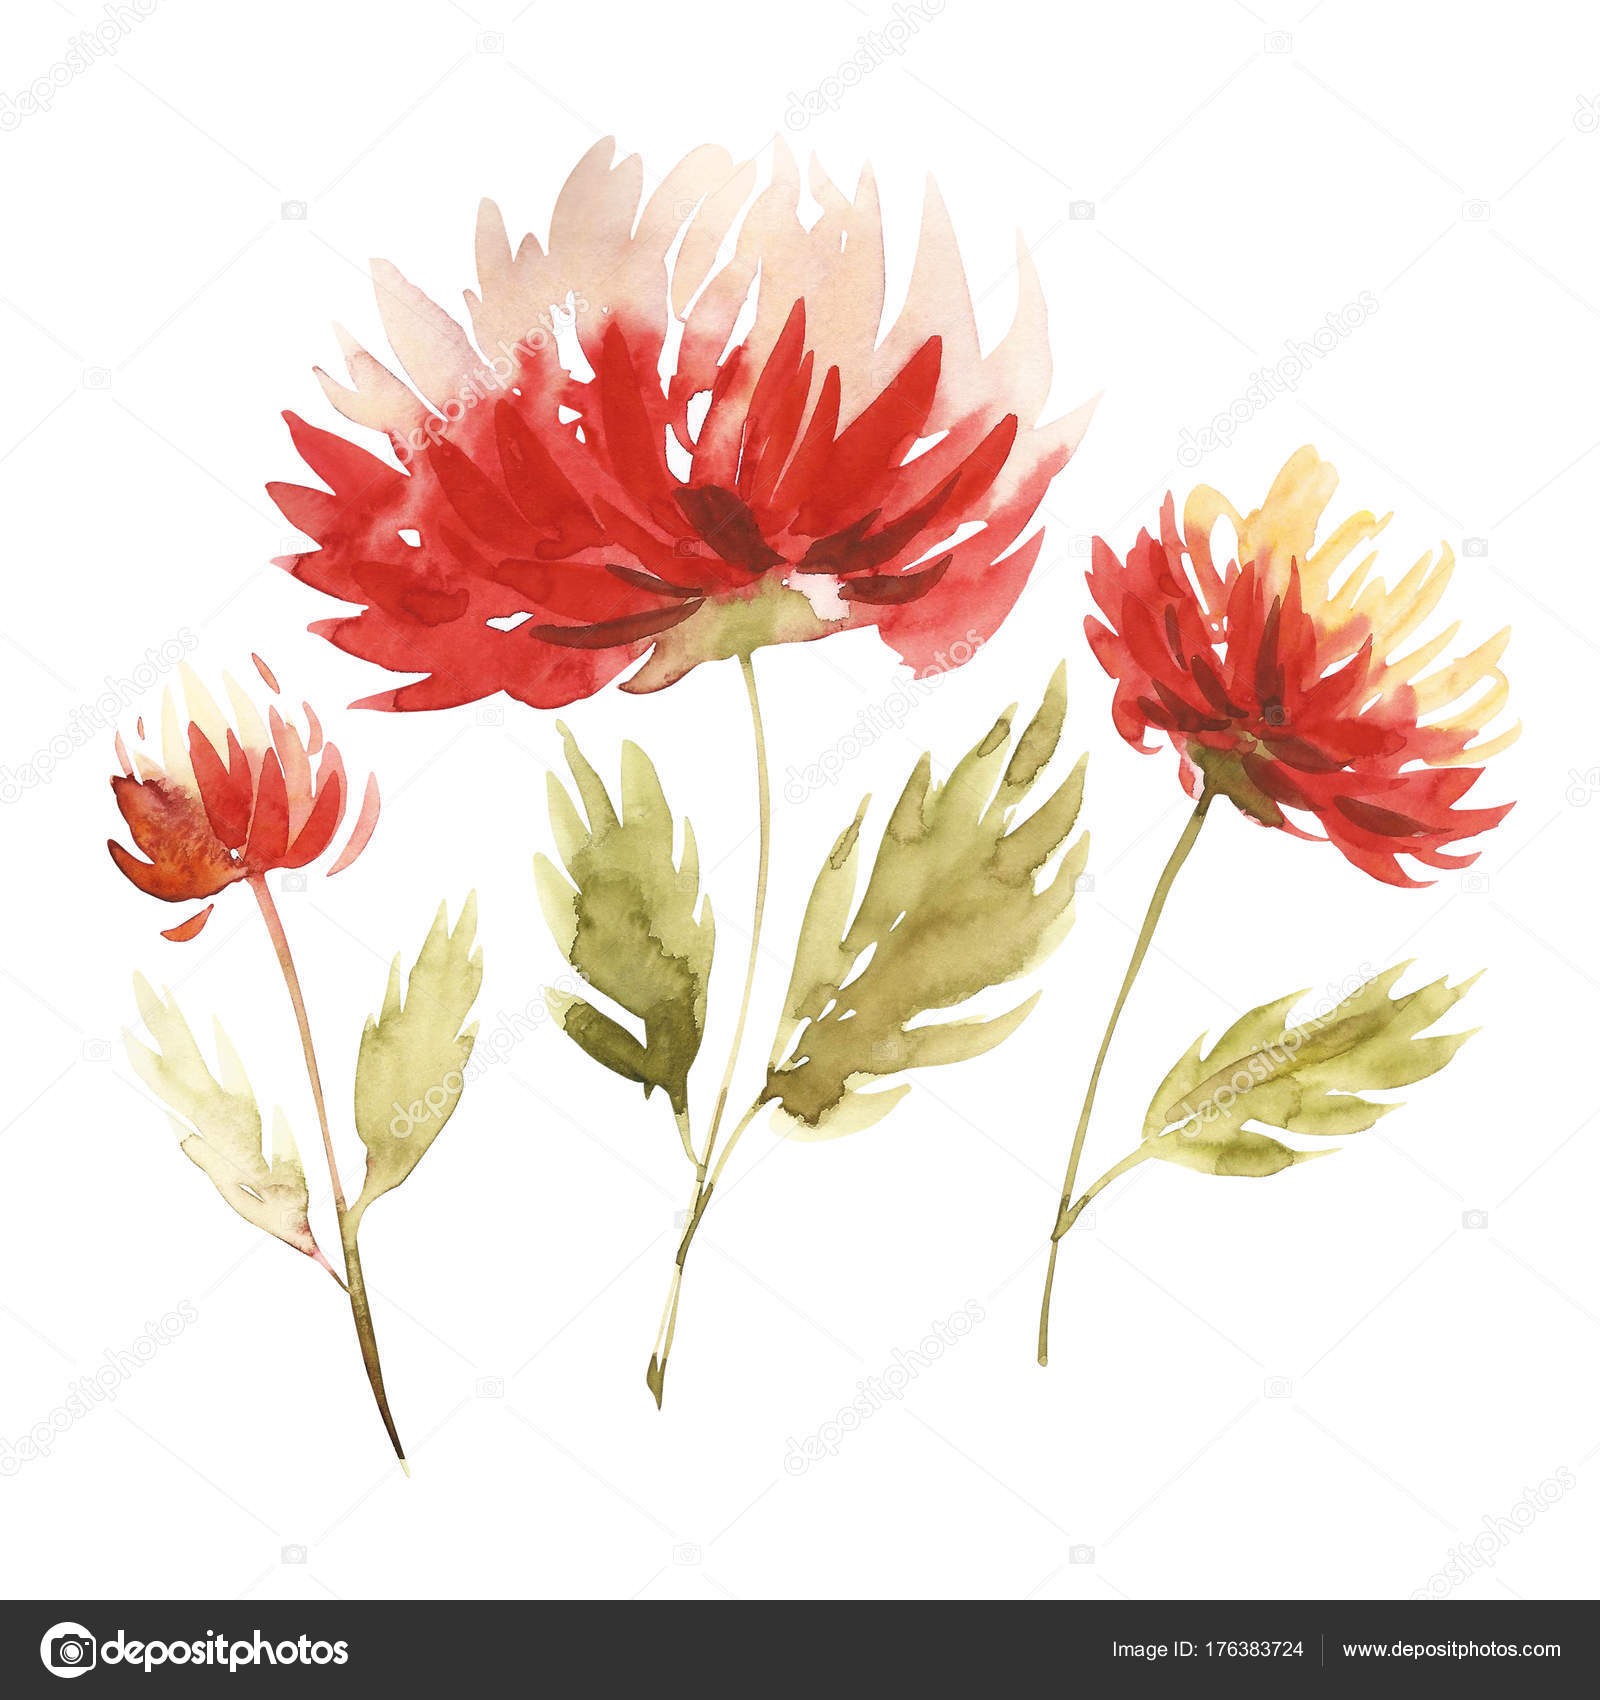 Flowers watercolor illustration. A bouquet with a big red aster and ...